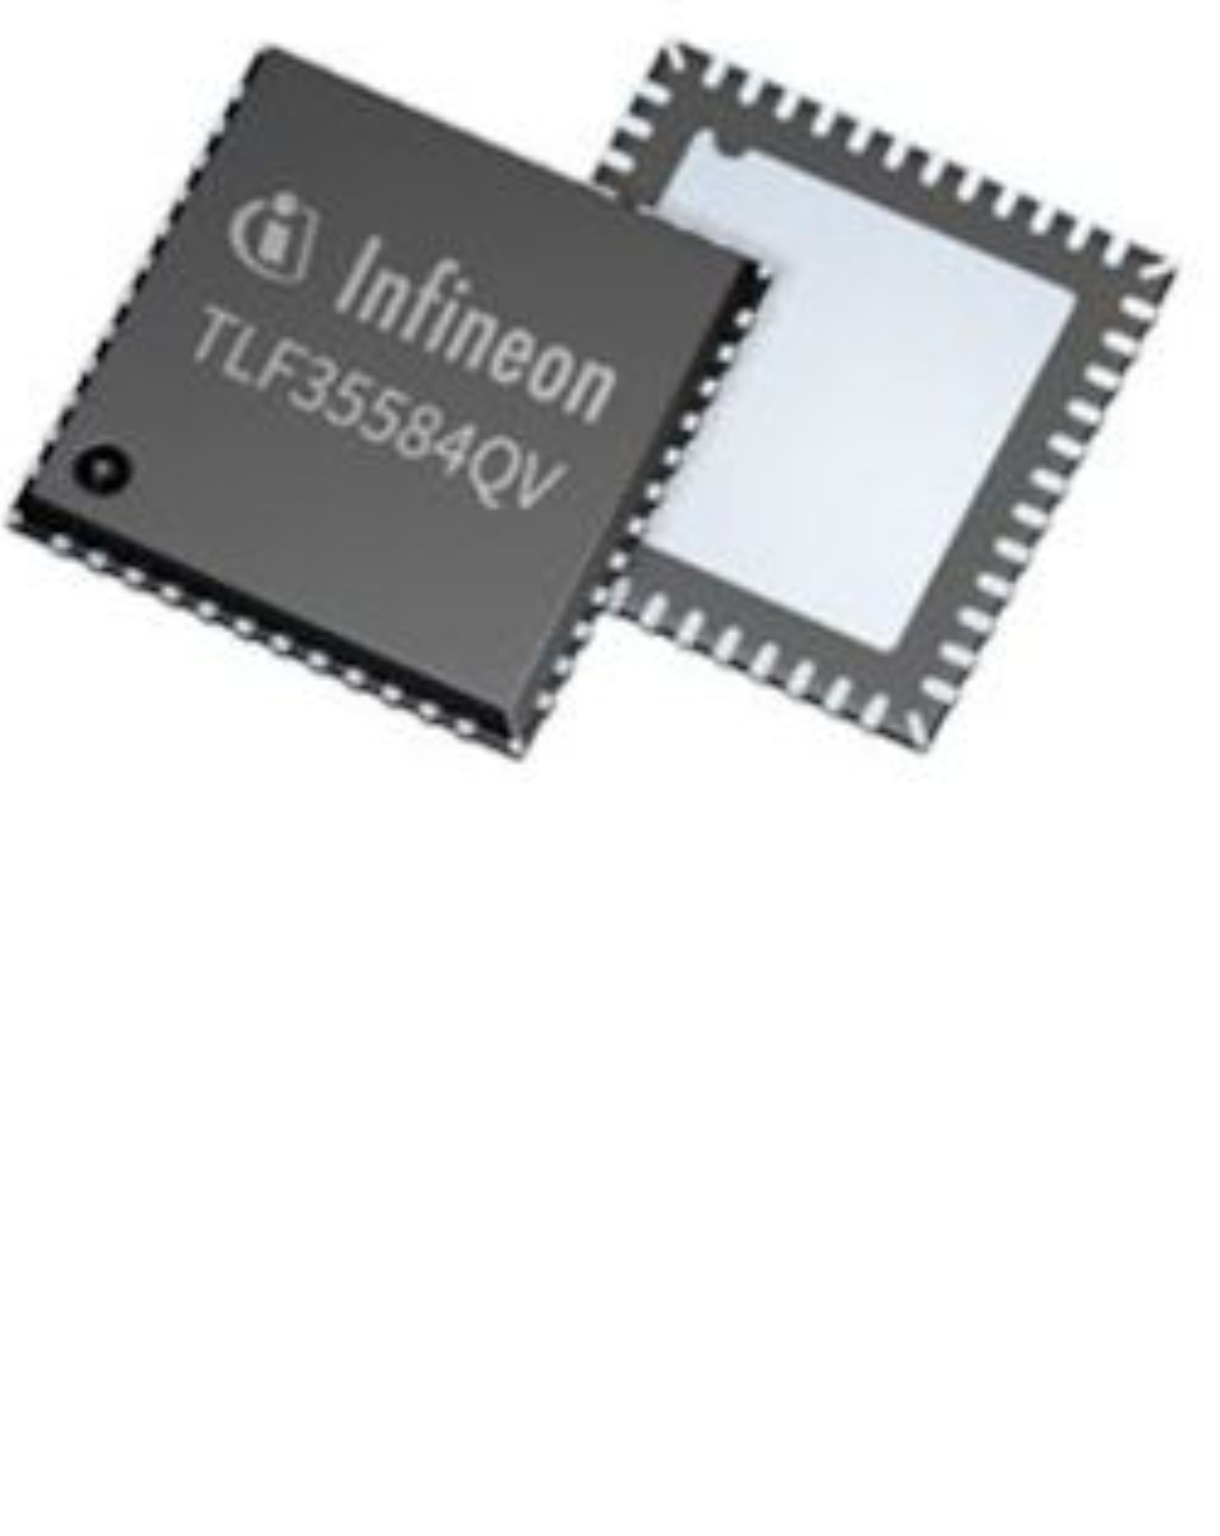 Tlf35584qvvs1 Infineon Technologies On The Bridge Supply Isolated Power Ir2104 100 Pwm Circuit Sales Name Package C Main Voltage